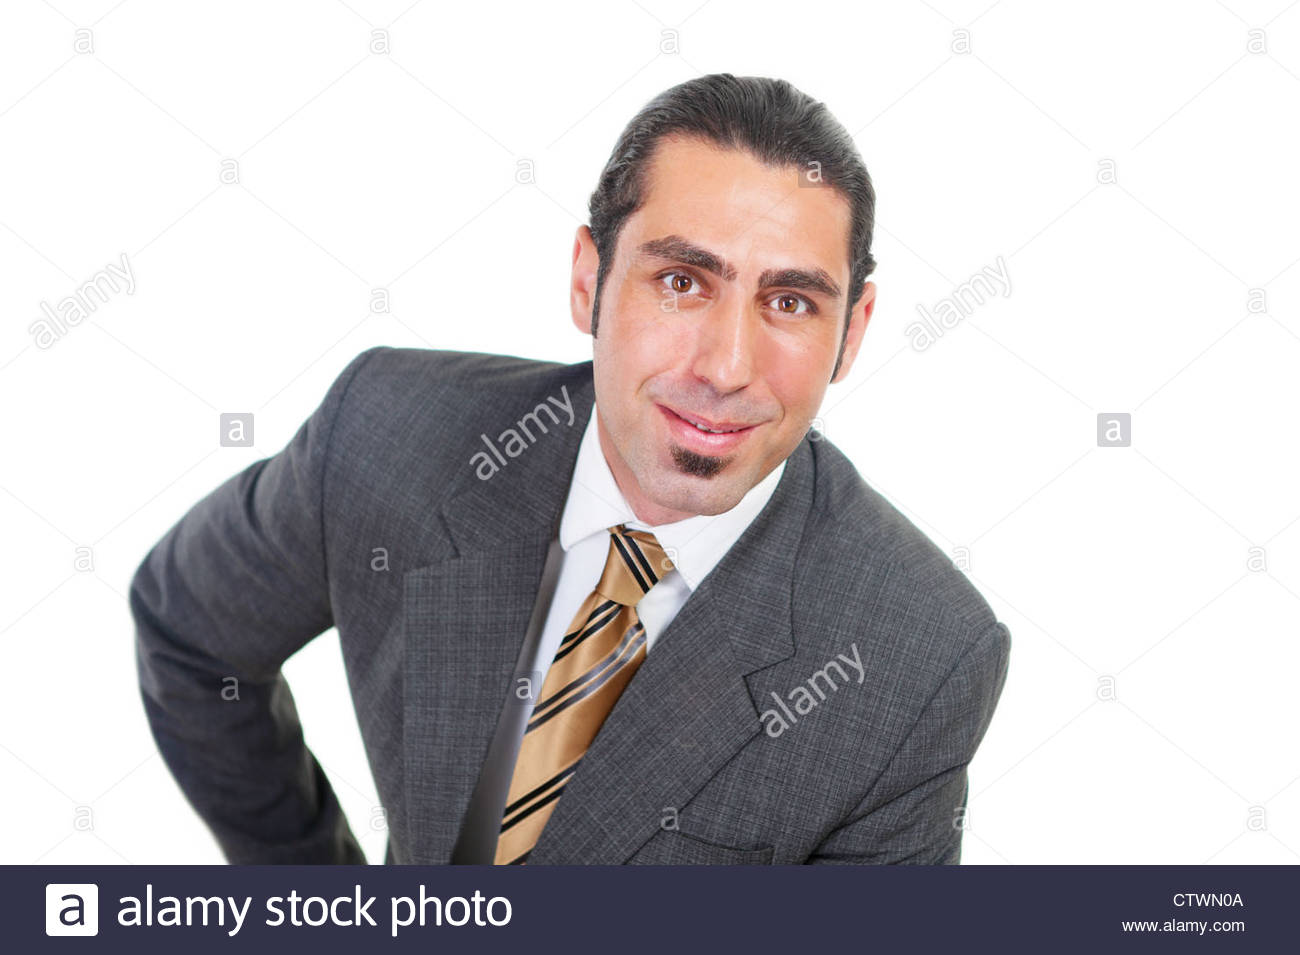 Clever salesman - Stock Image